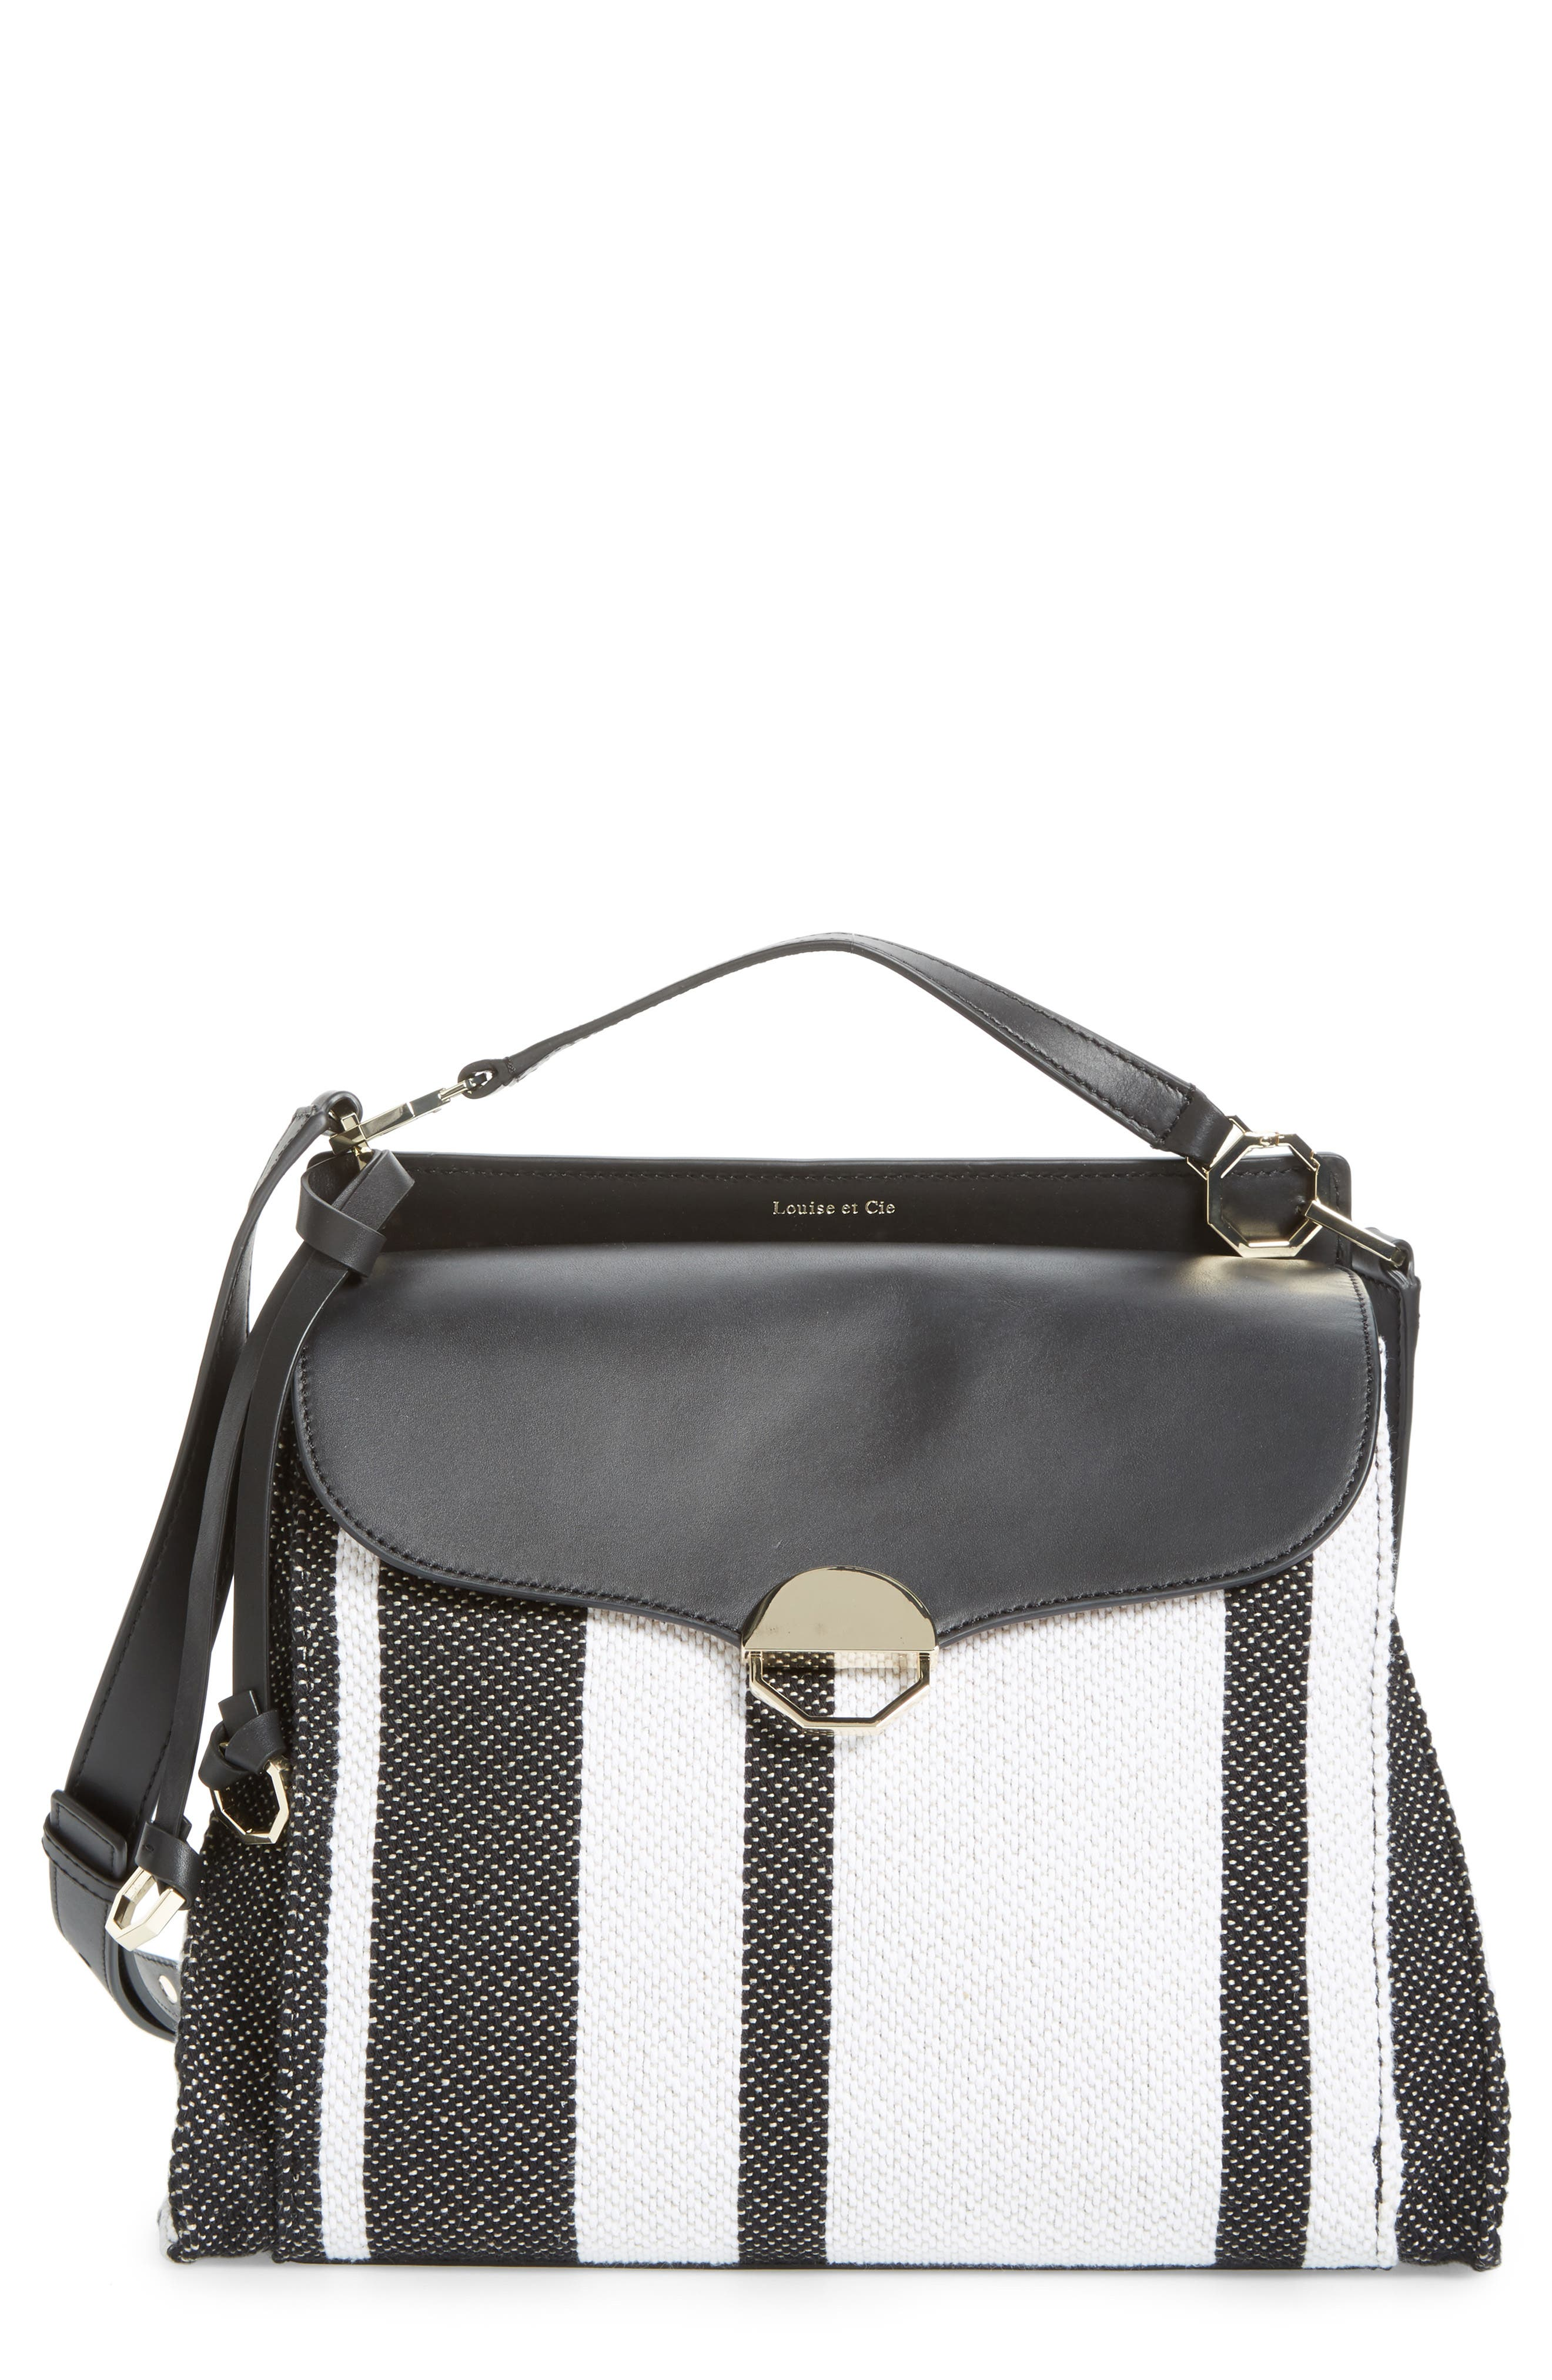 Louise et Cie Large Sonye Leather Top Handle Crossbody Bag